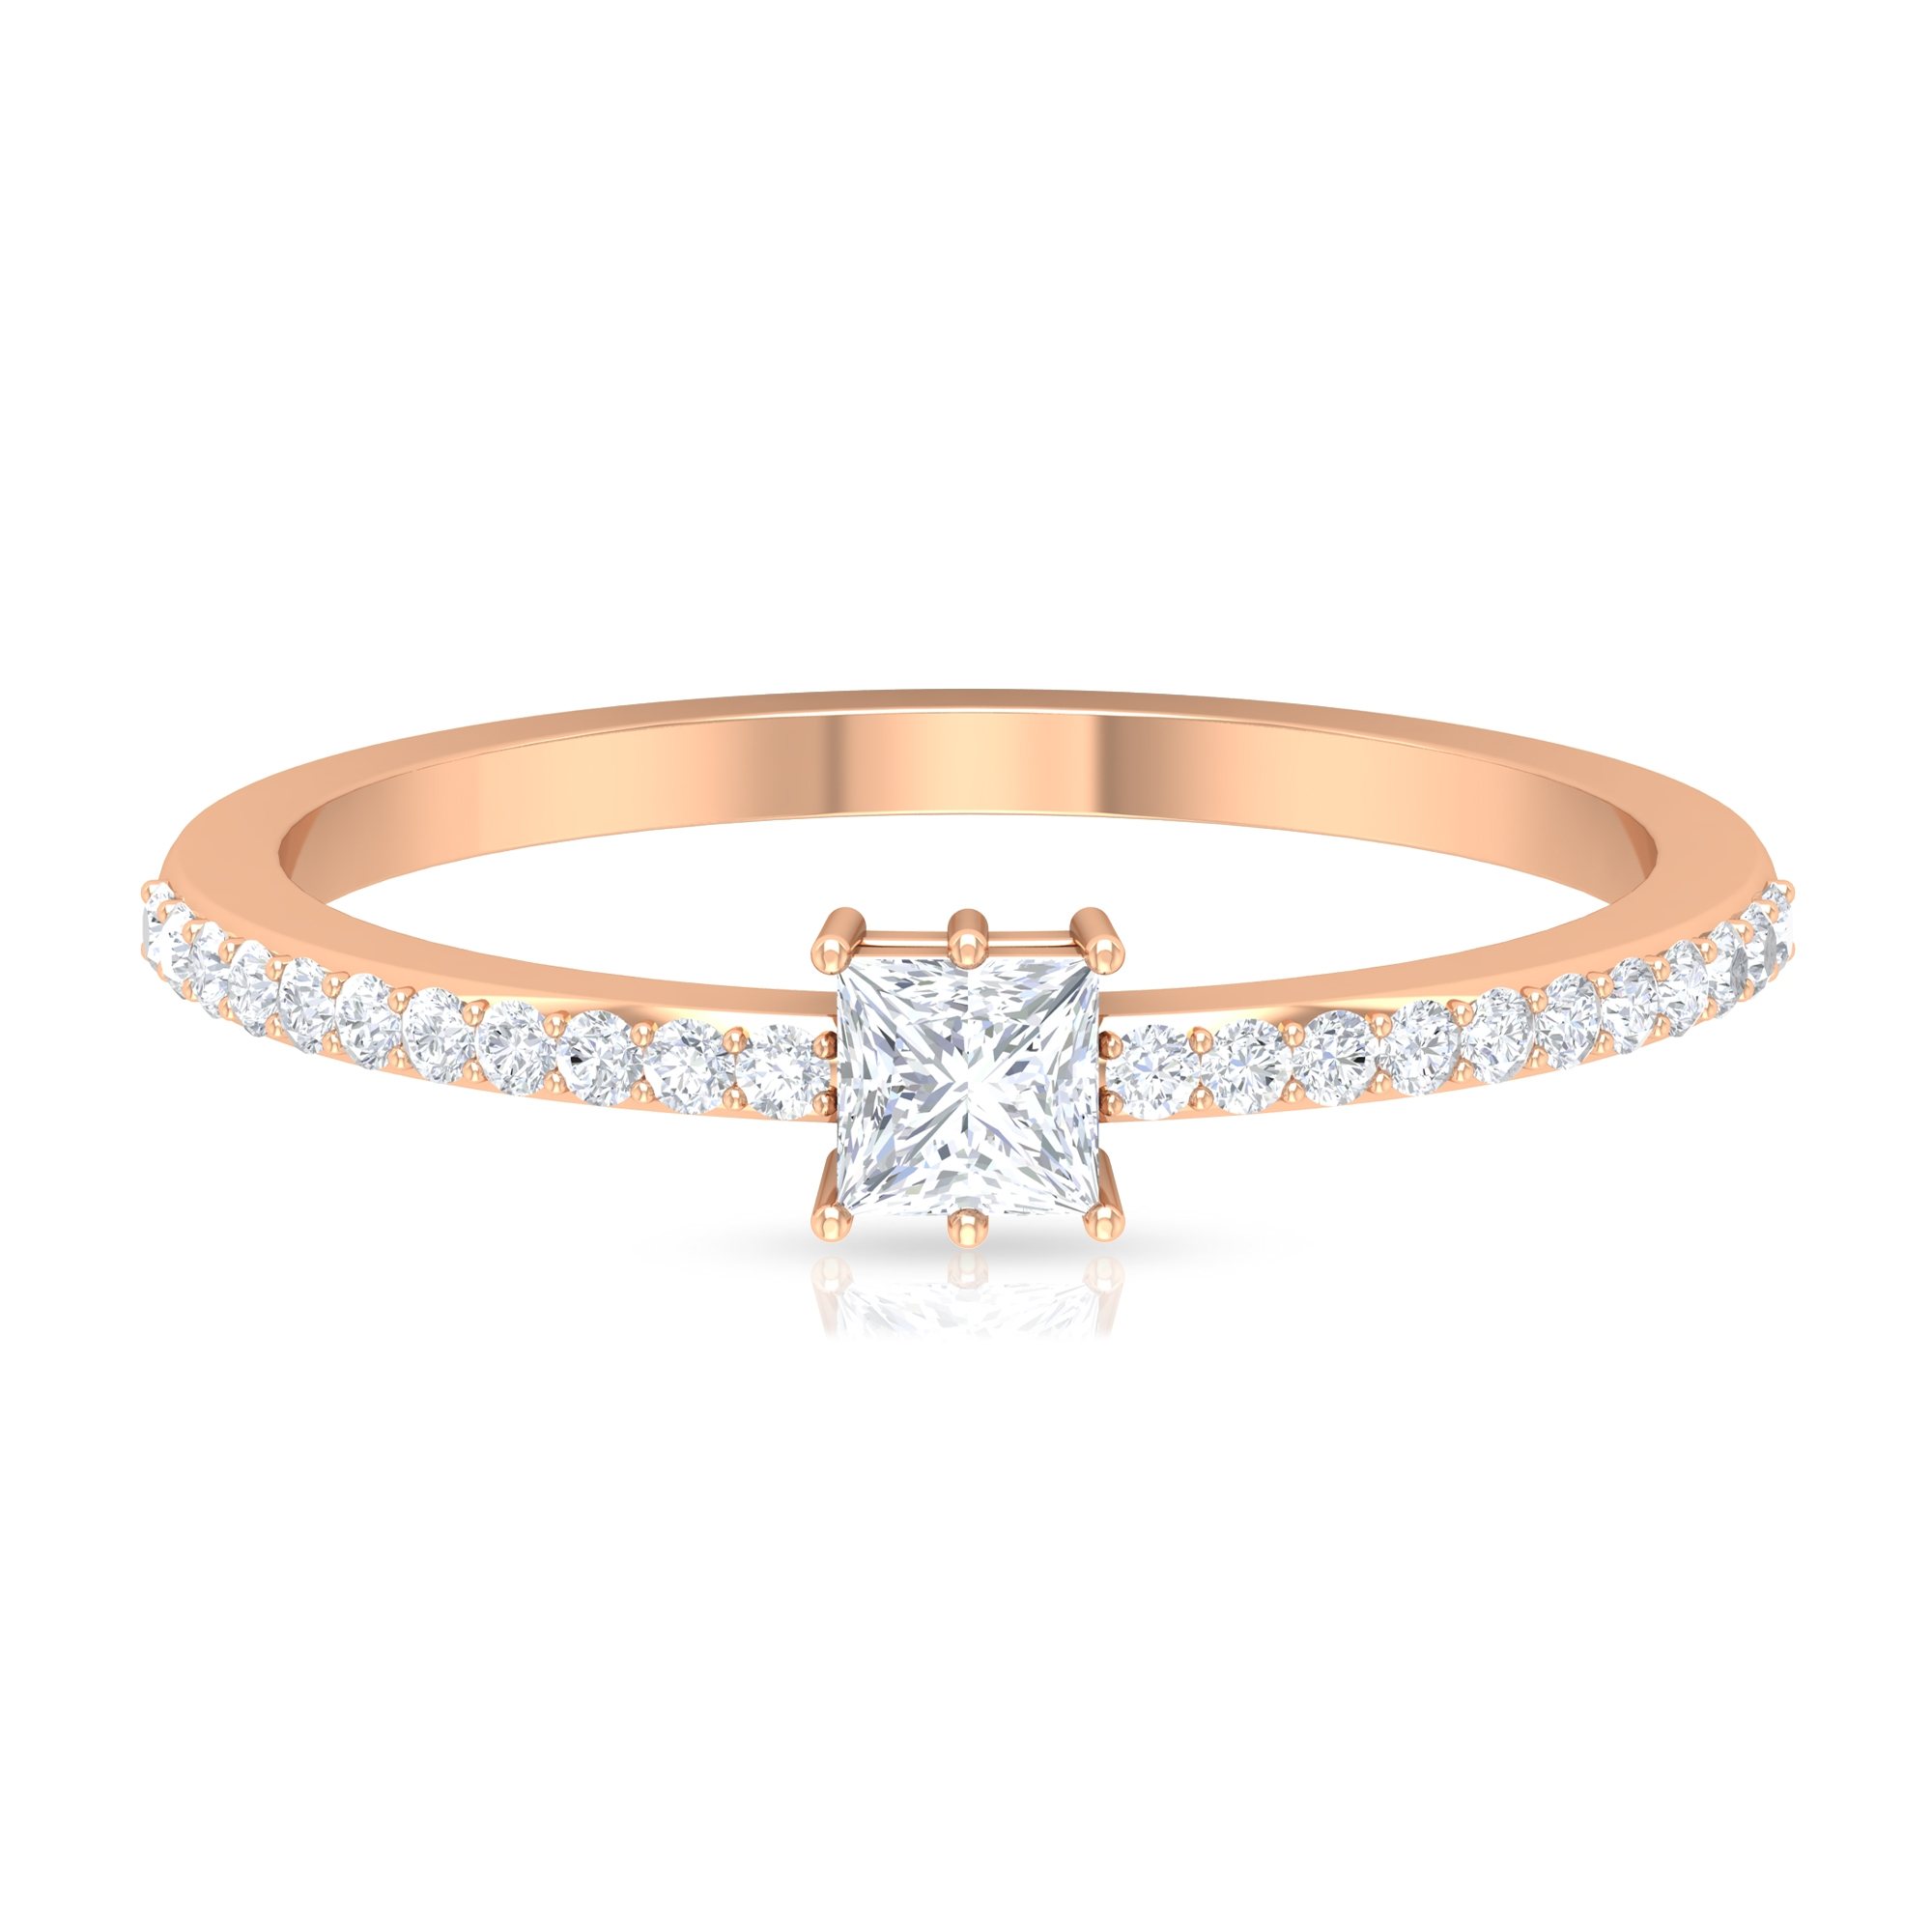 Six Prong Set 0.50 CT Princess Cut Diamond Solitaire Ring with Surface Prong Set Side Stones